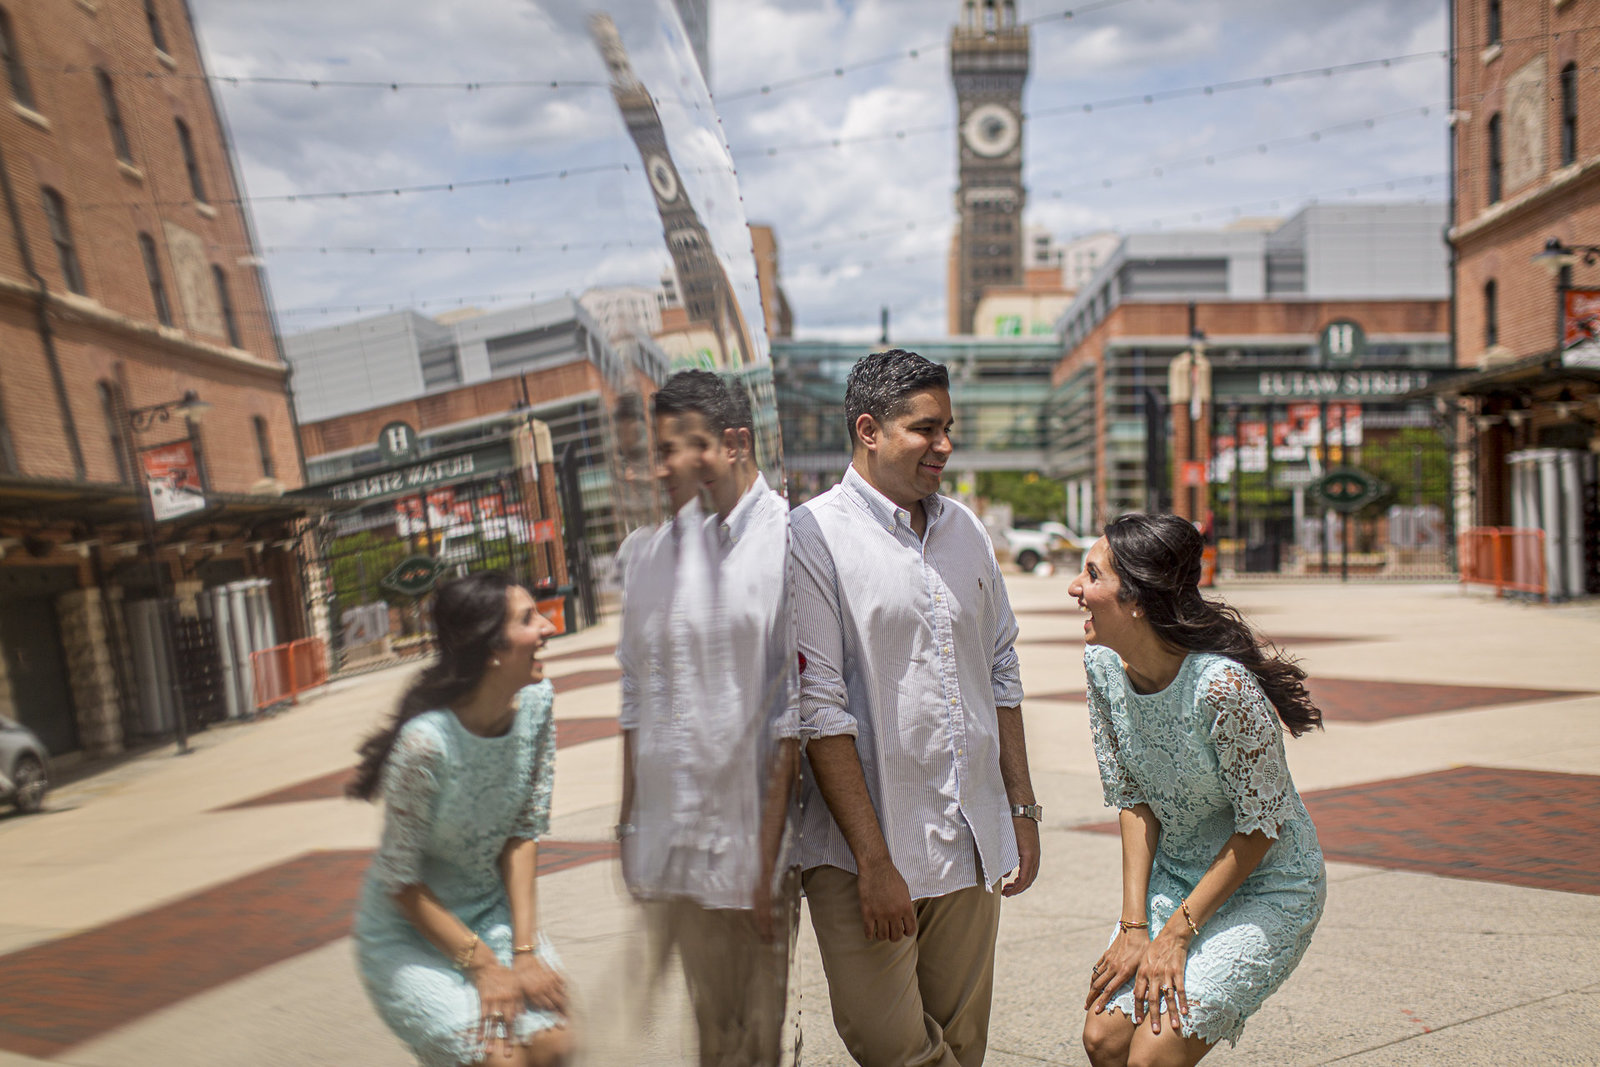 camden-yard-baltimore-md-engagement-andrew-morrell-2